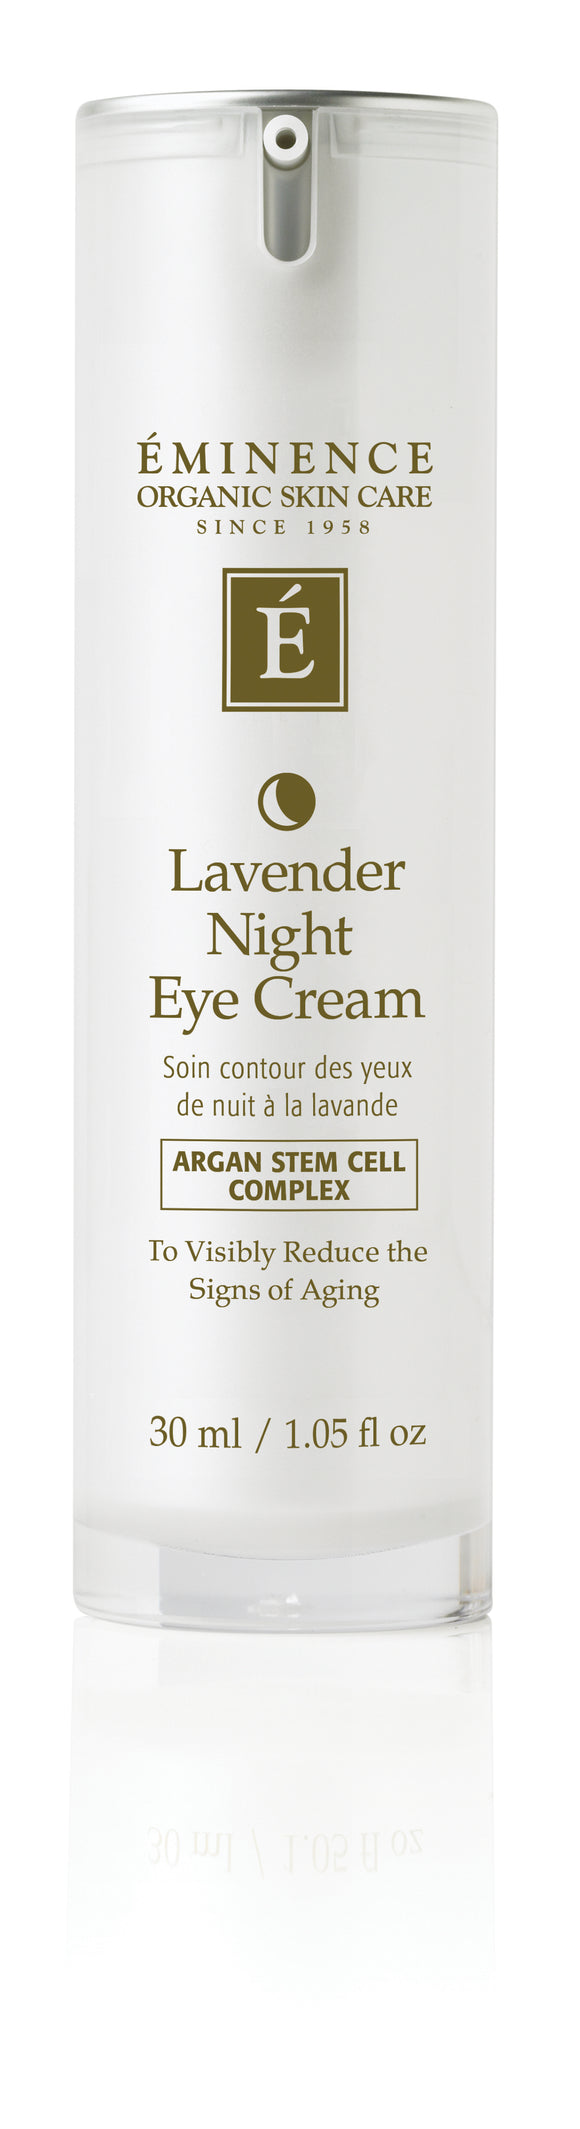 Eminence Organics Age Lavender Corrective Night Eye Cream